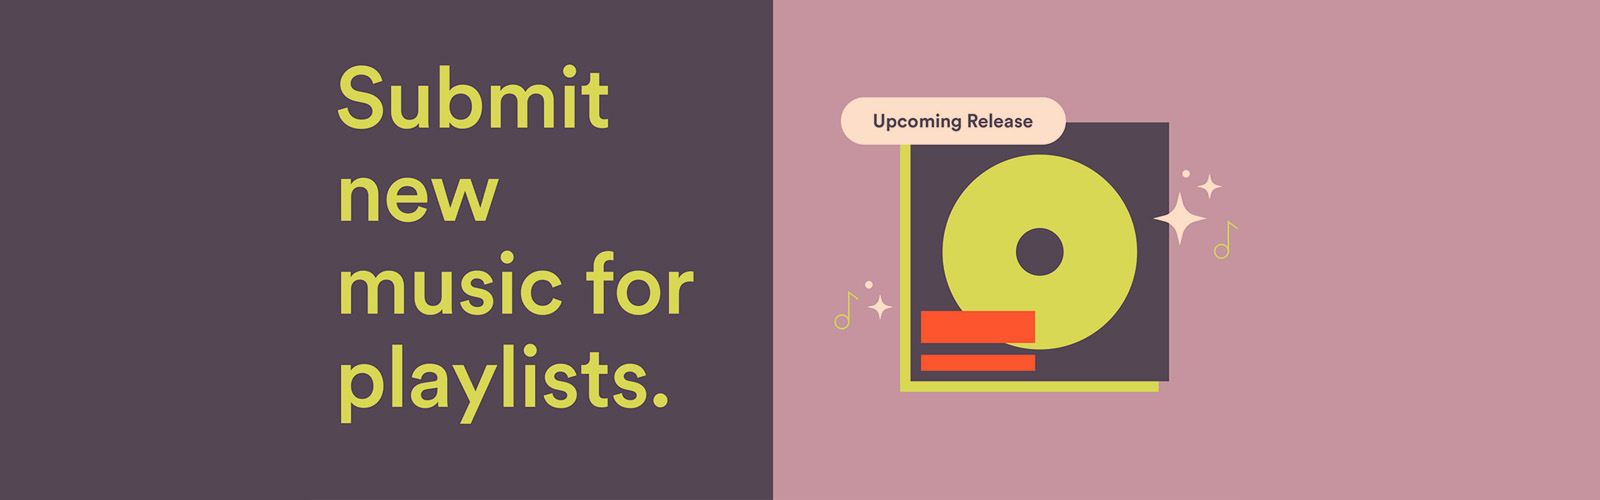 SPOTIFY EDITORIAL PLAYLISTS: Great News for Independent Labels and Artists!